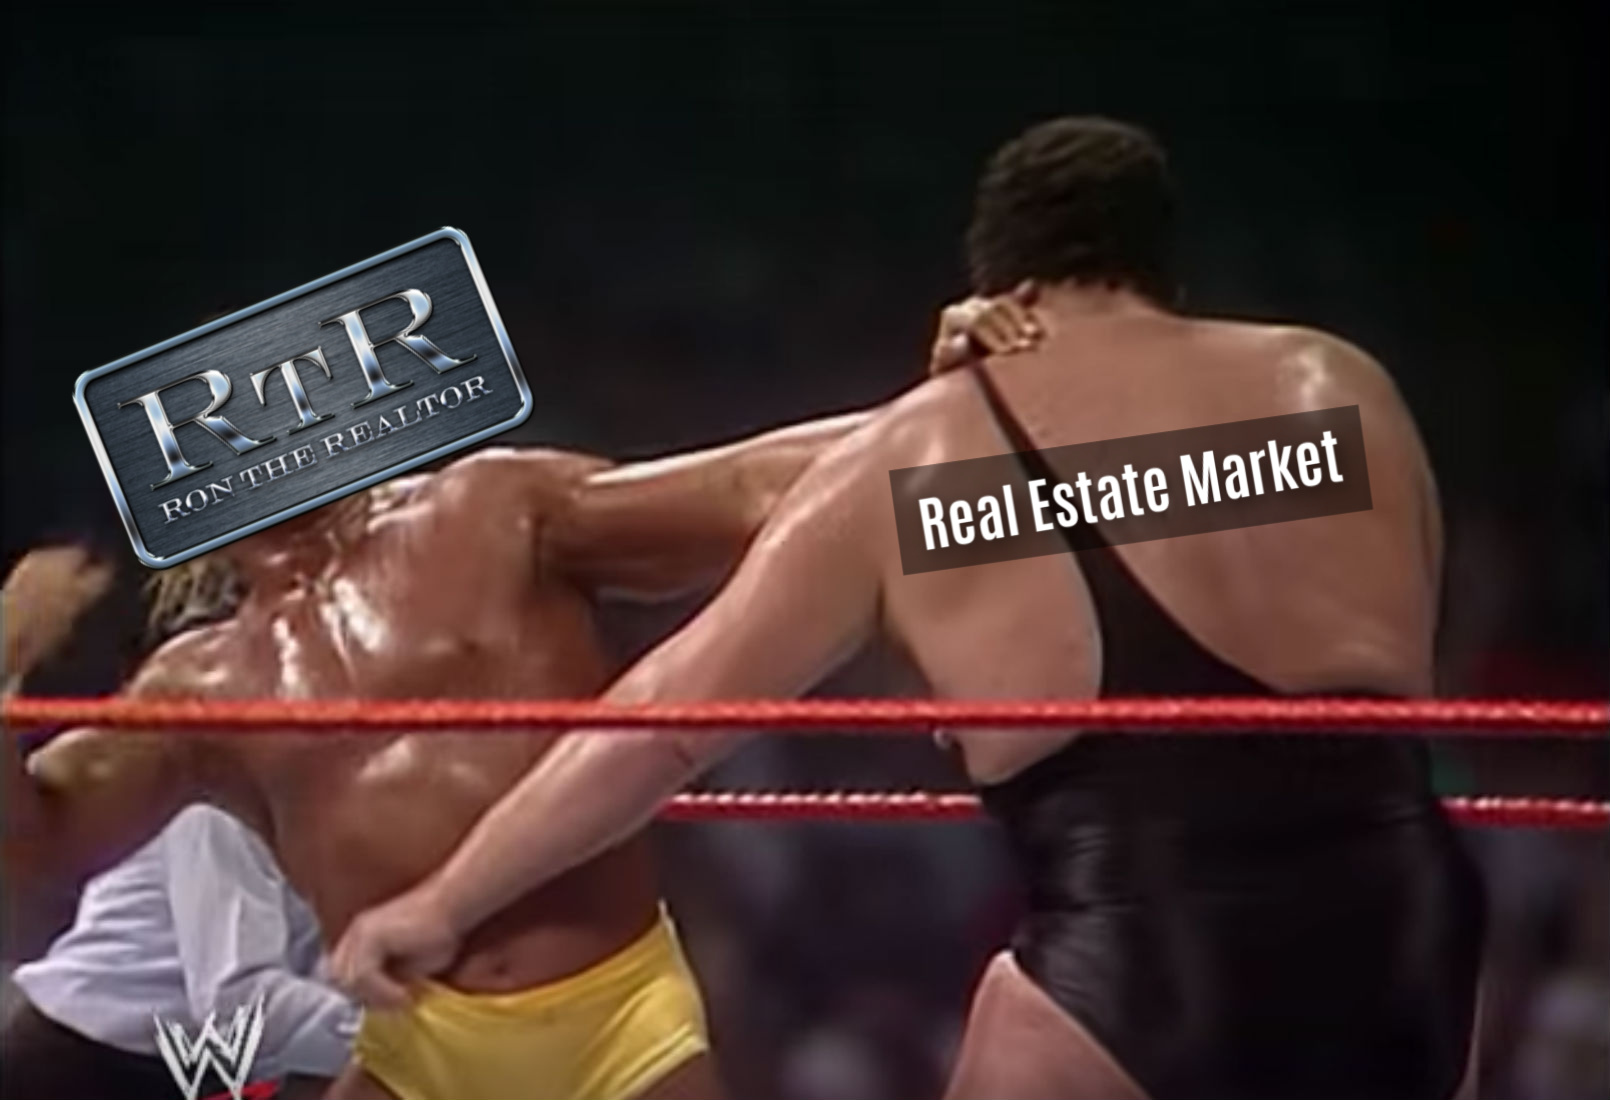 Ron the Realtor 2nd Quarter 2019 Domination